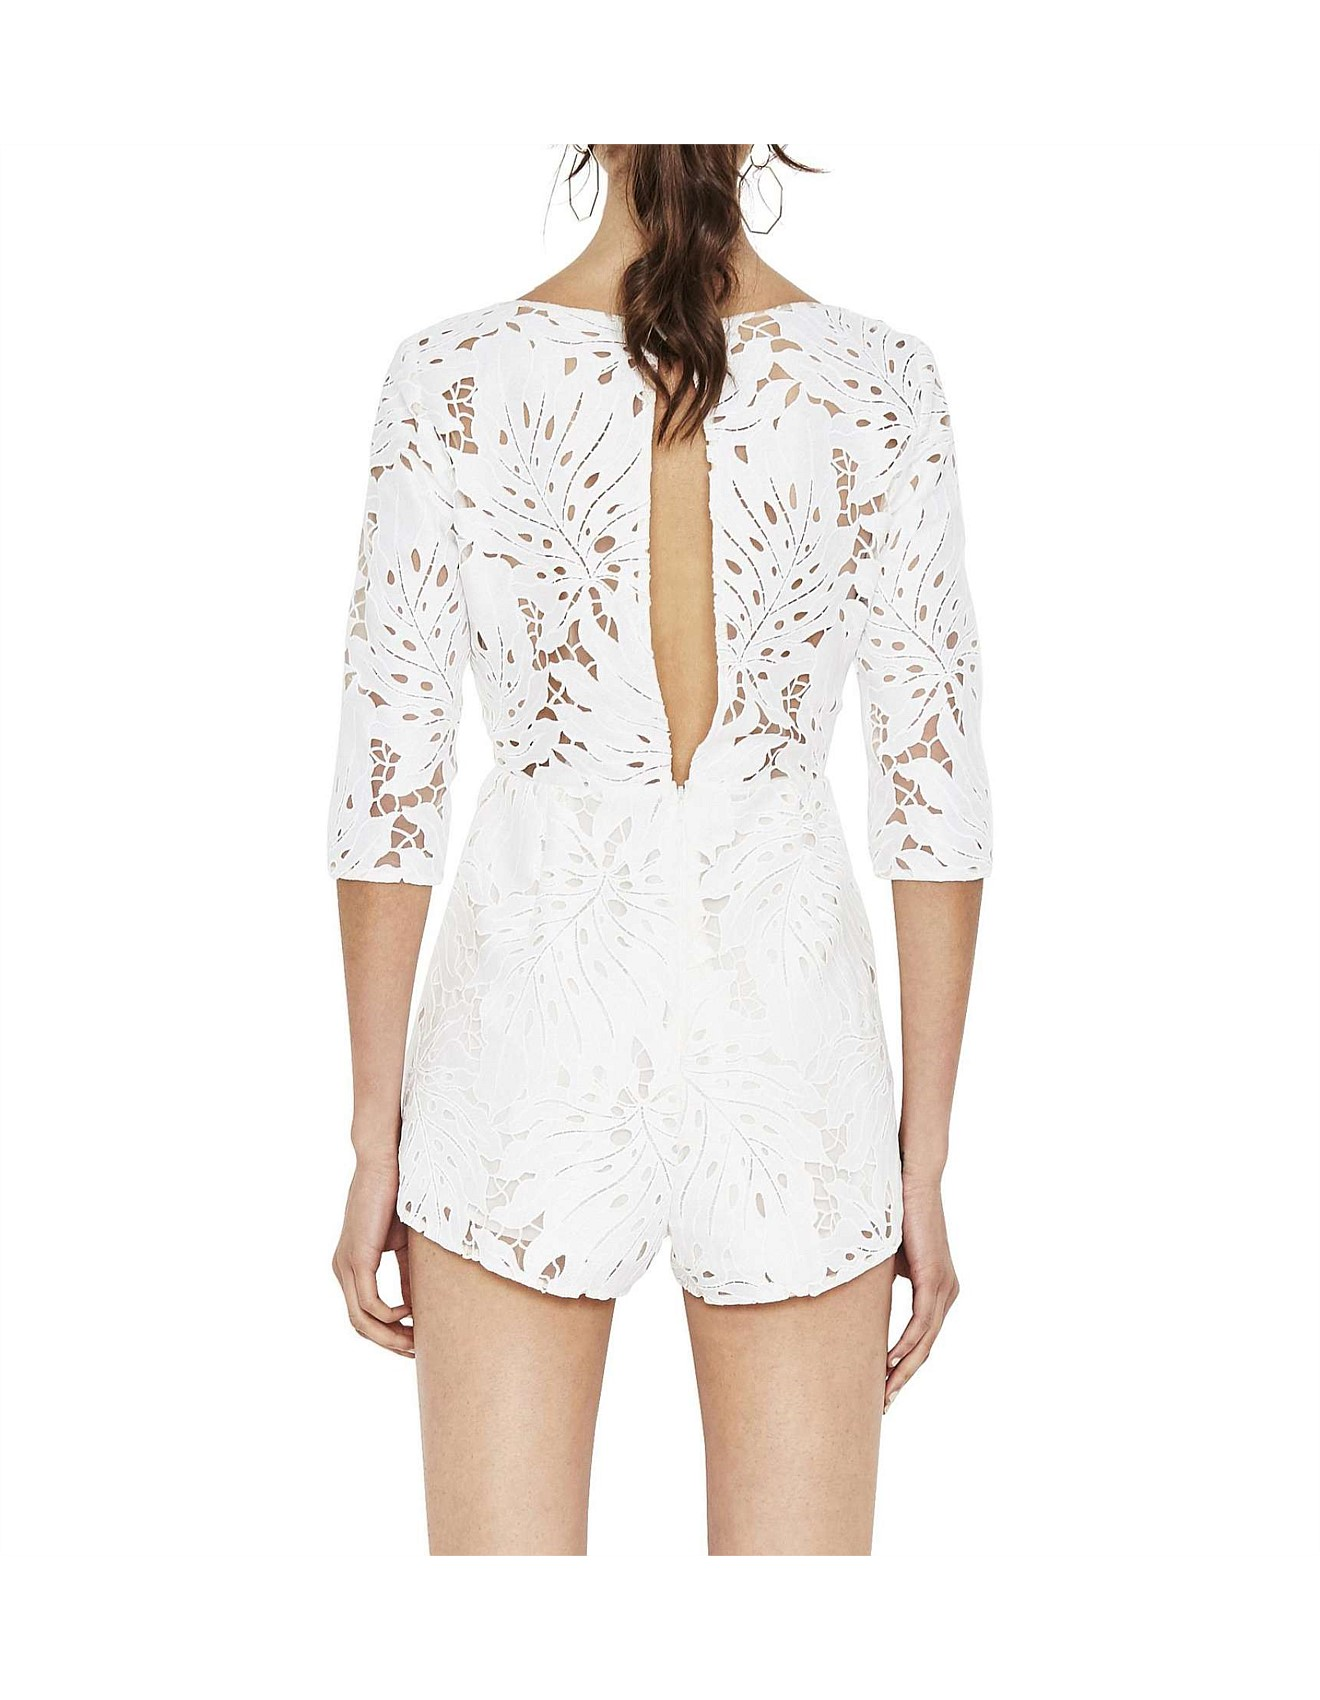 768a5605f0 Rumours Playsuit. 1  2  3. Zoom. Alice McCall